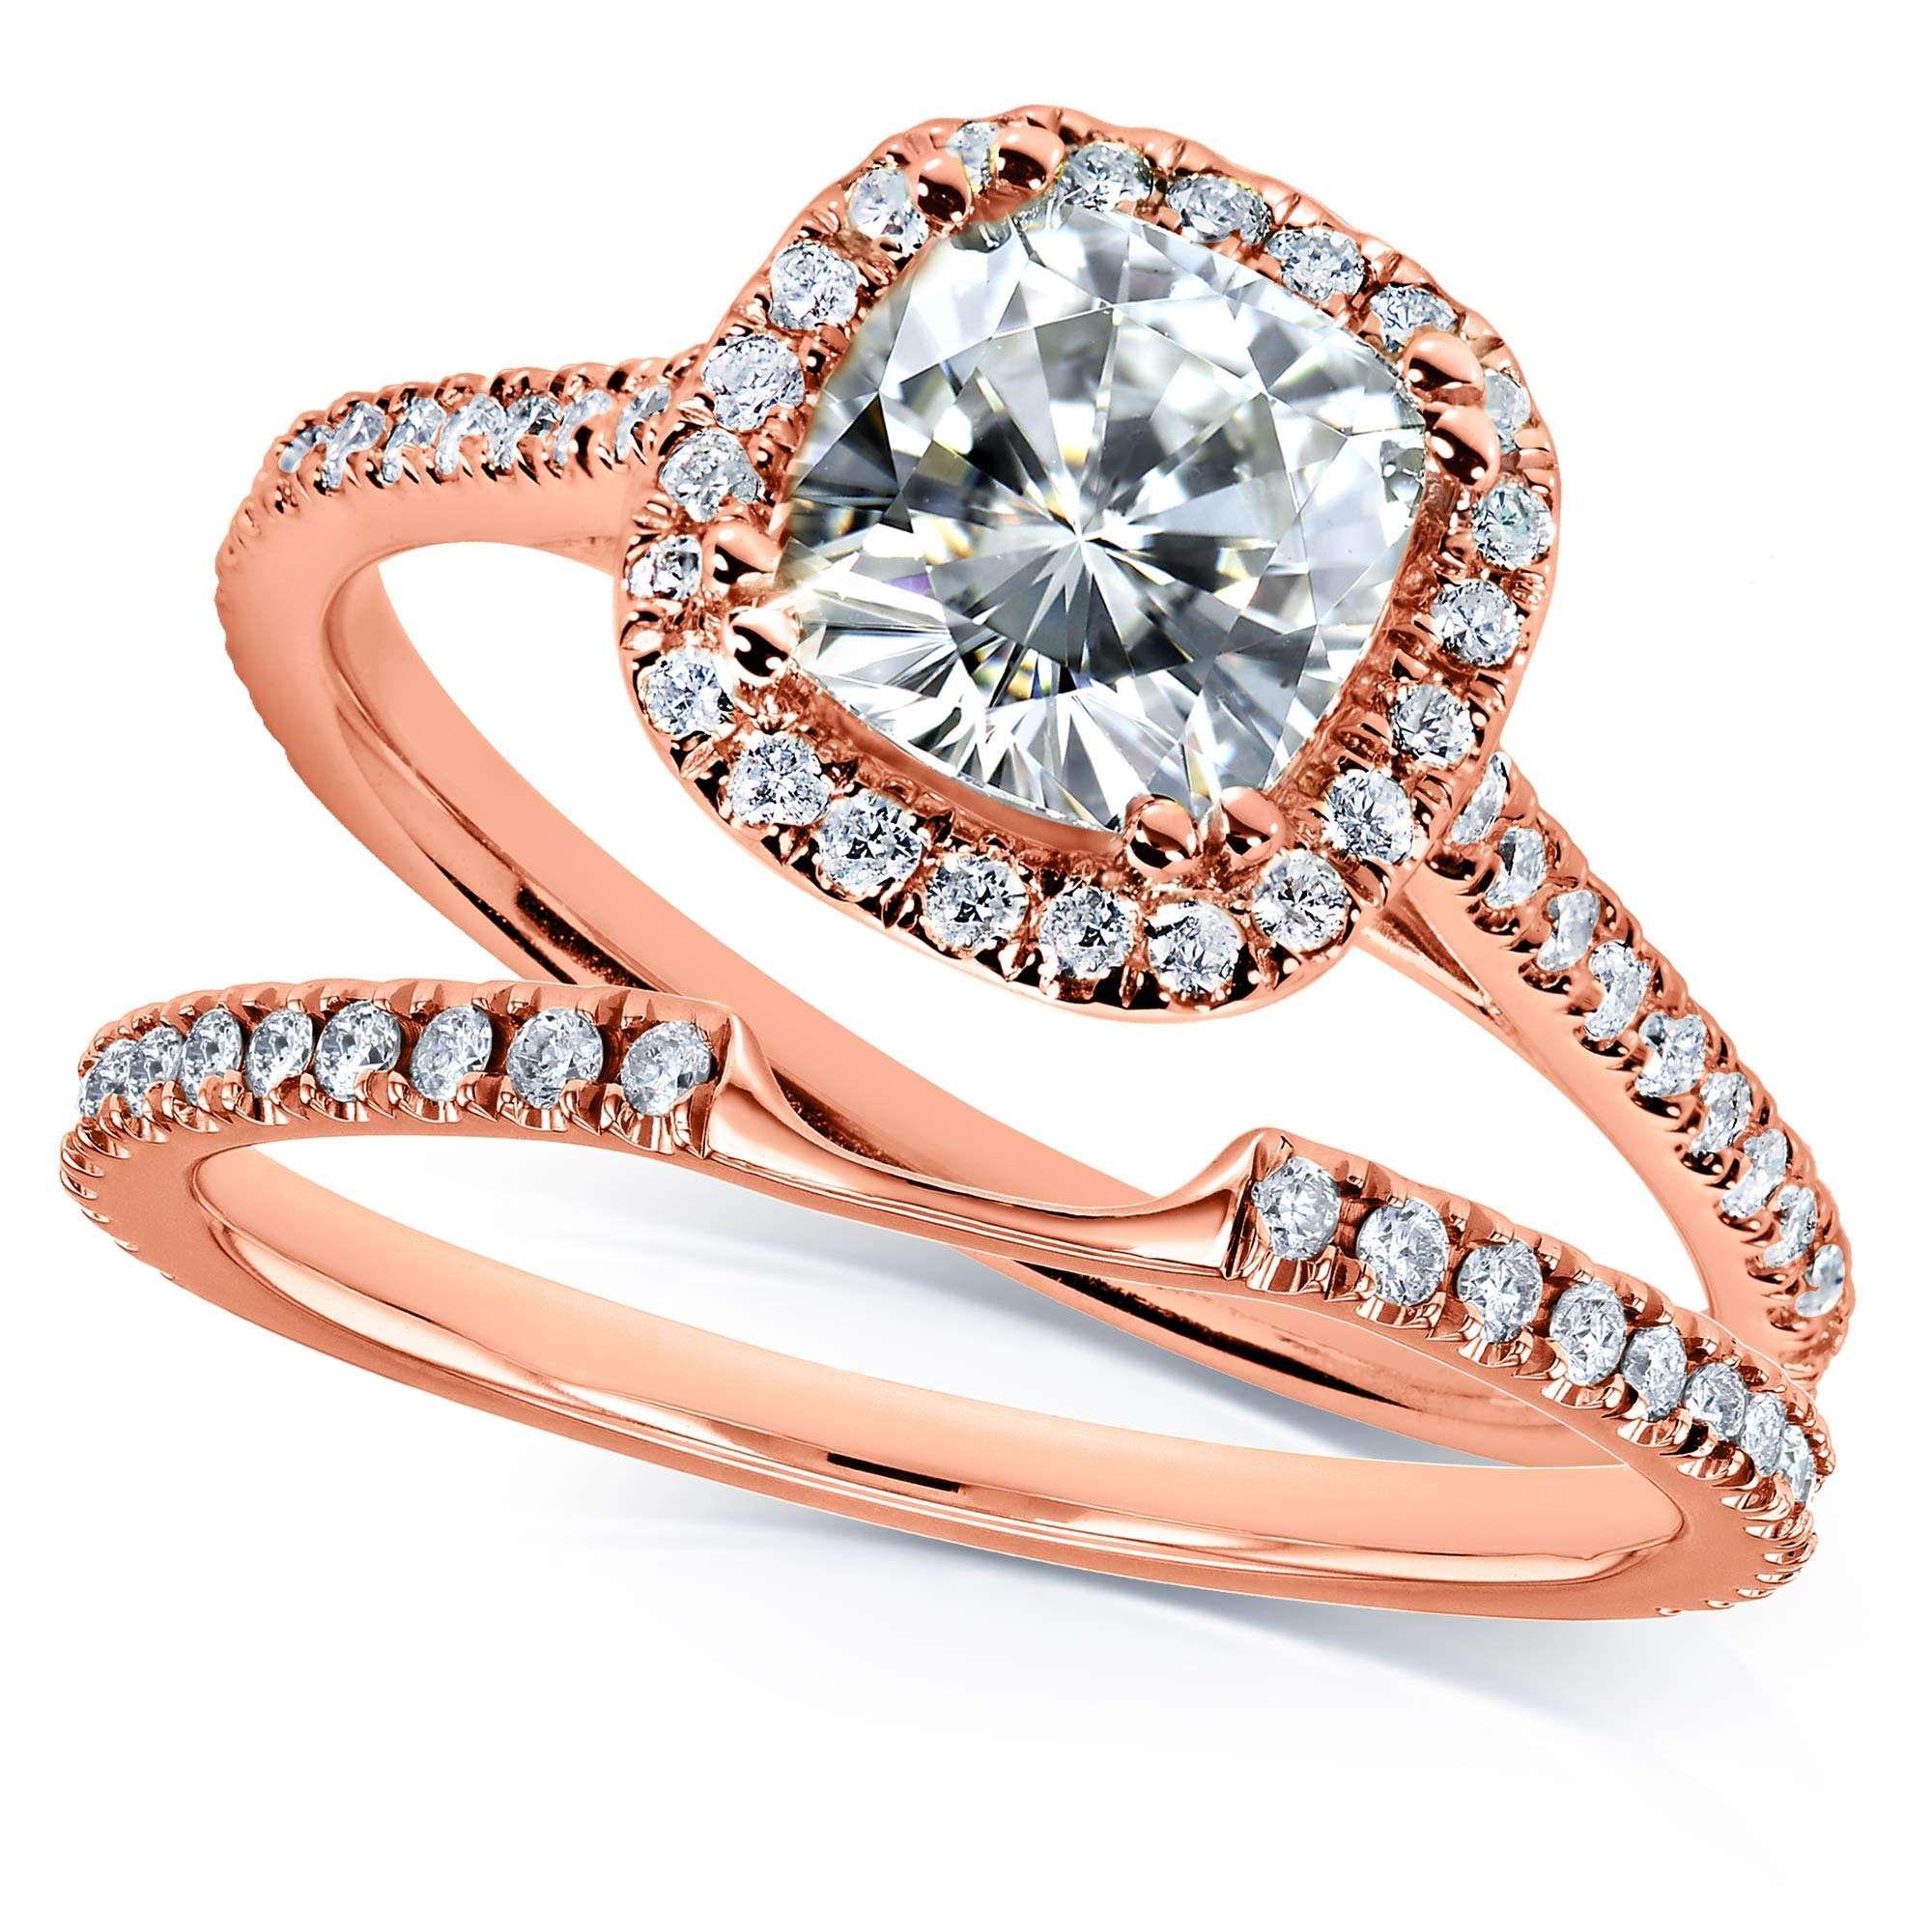 Kobelli Moissanite and Lab Grown Diamond Halo Bridal Rings Set 1 1/2 CTW in 14k Rose Gold (HI/VS, DEF/VS), 4.5